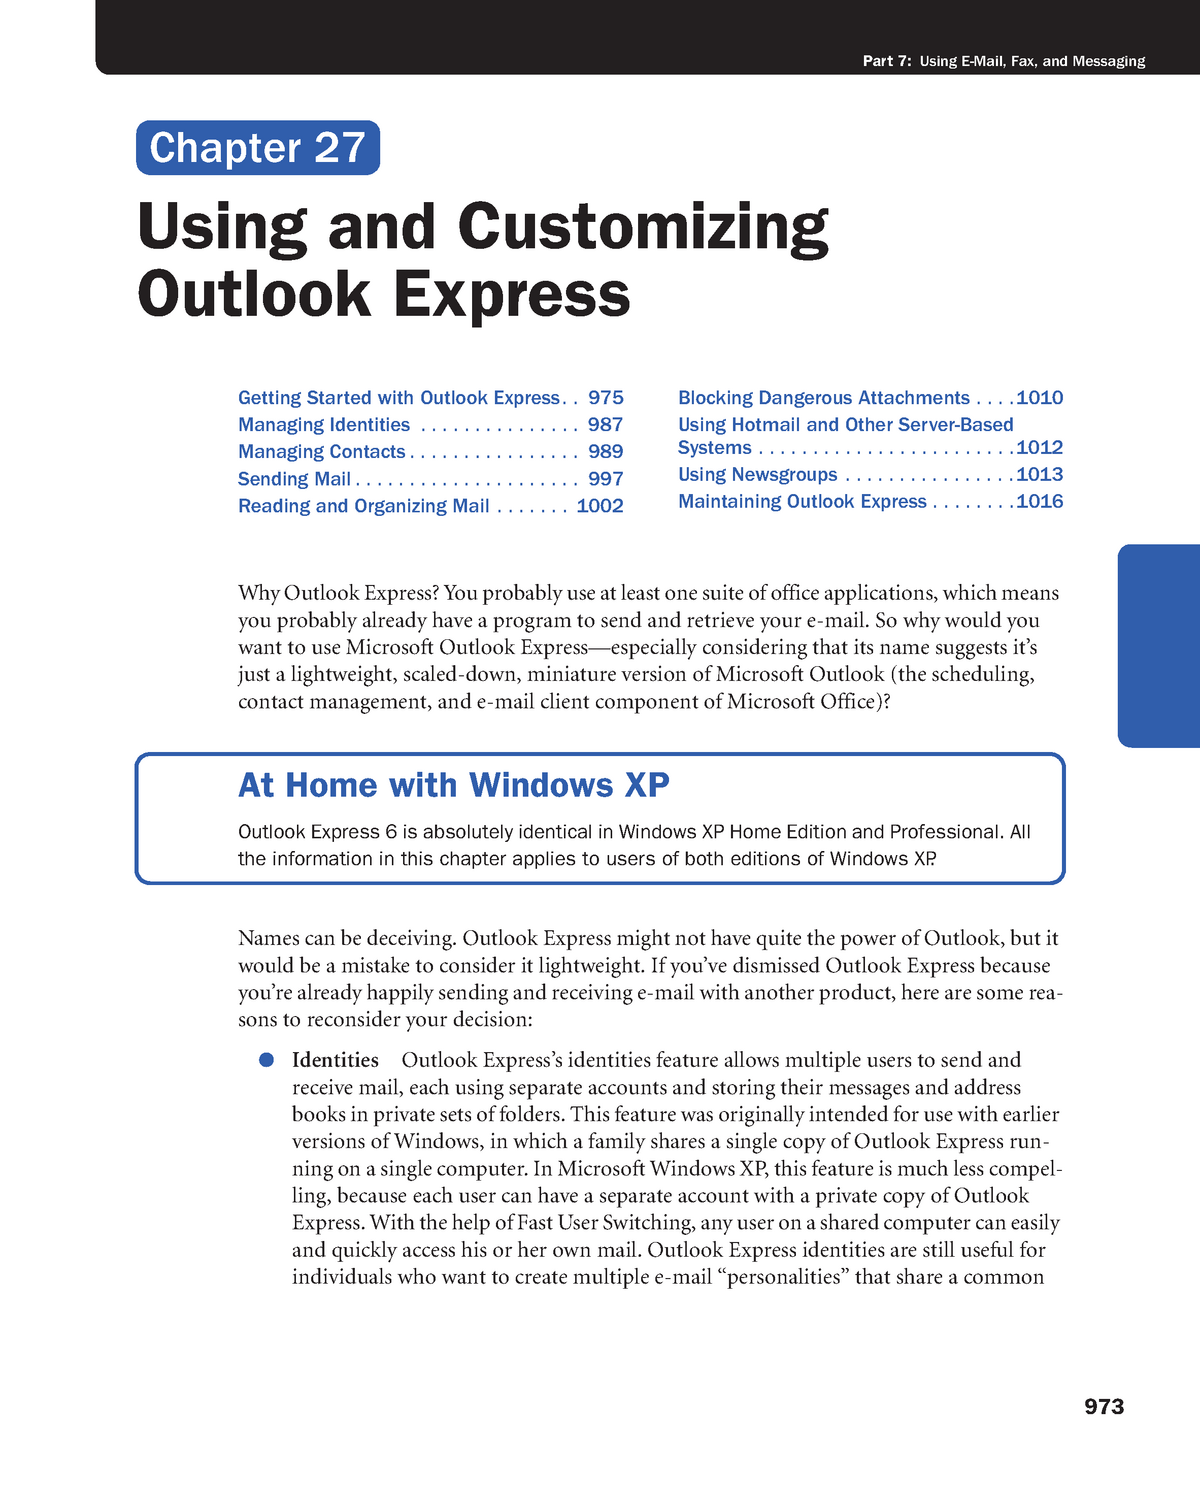 Chapter 27 - Using and Customizing Outlook Express